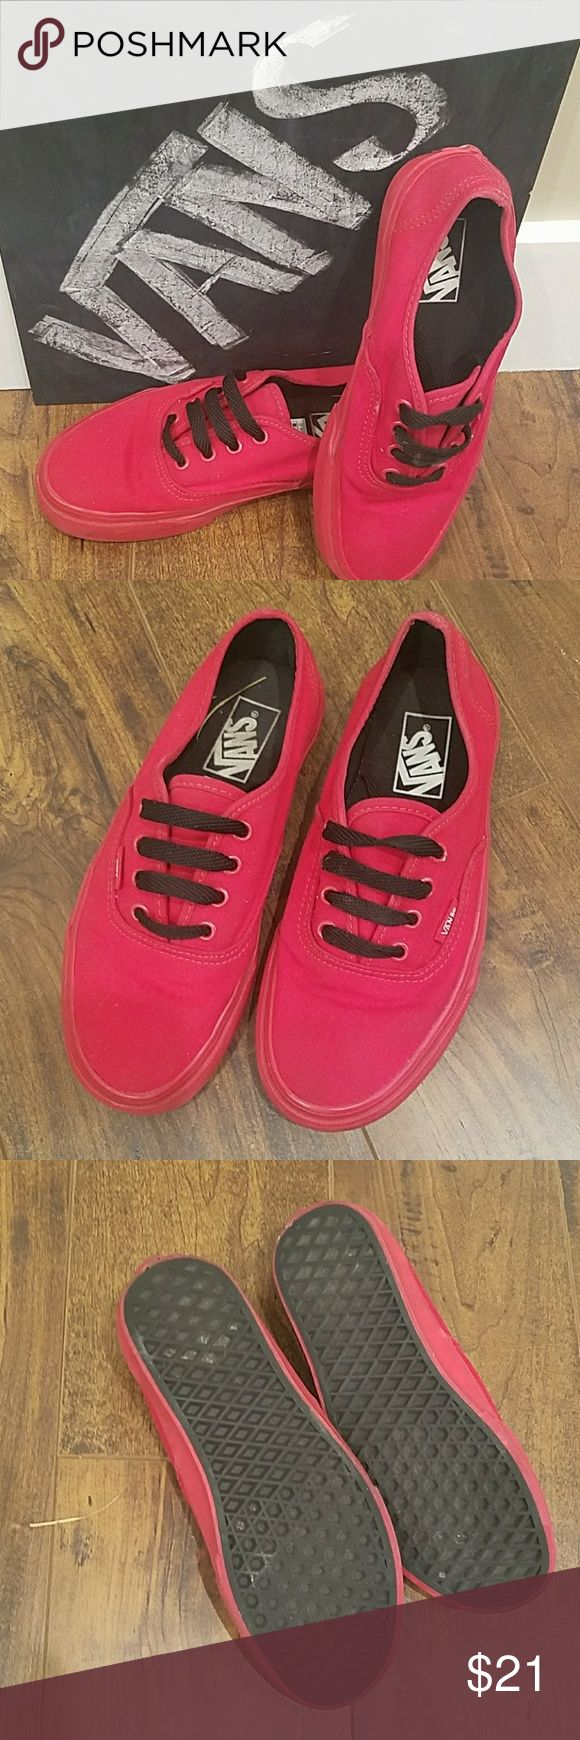 ♥VANS Skate Shoes VANS.... Kickstart your style with a classic skate sneaker that's as awesome as you are!  GREAT CONDITION  Size: Men's 6, women 7.5 Color: red  SMOKE FREE HOME Vans Shoes Sneakers